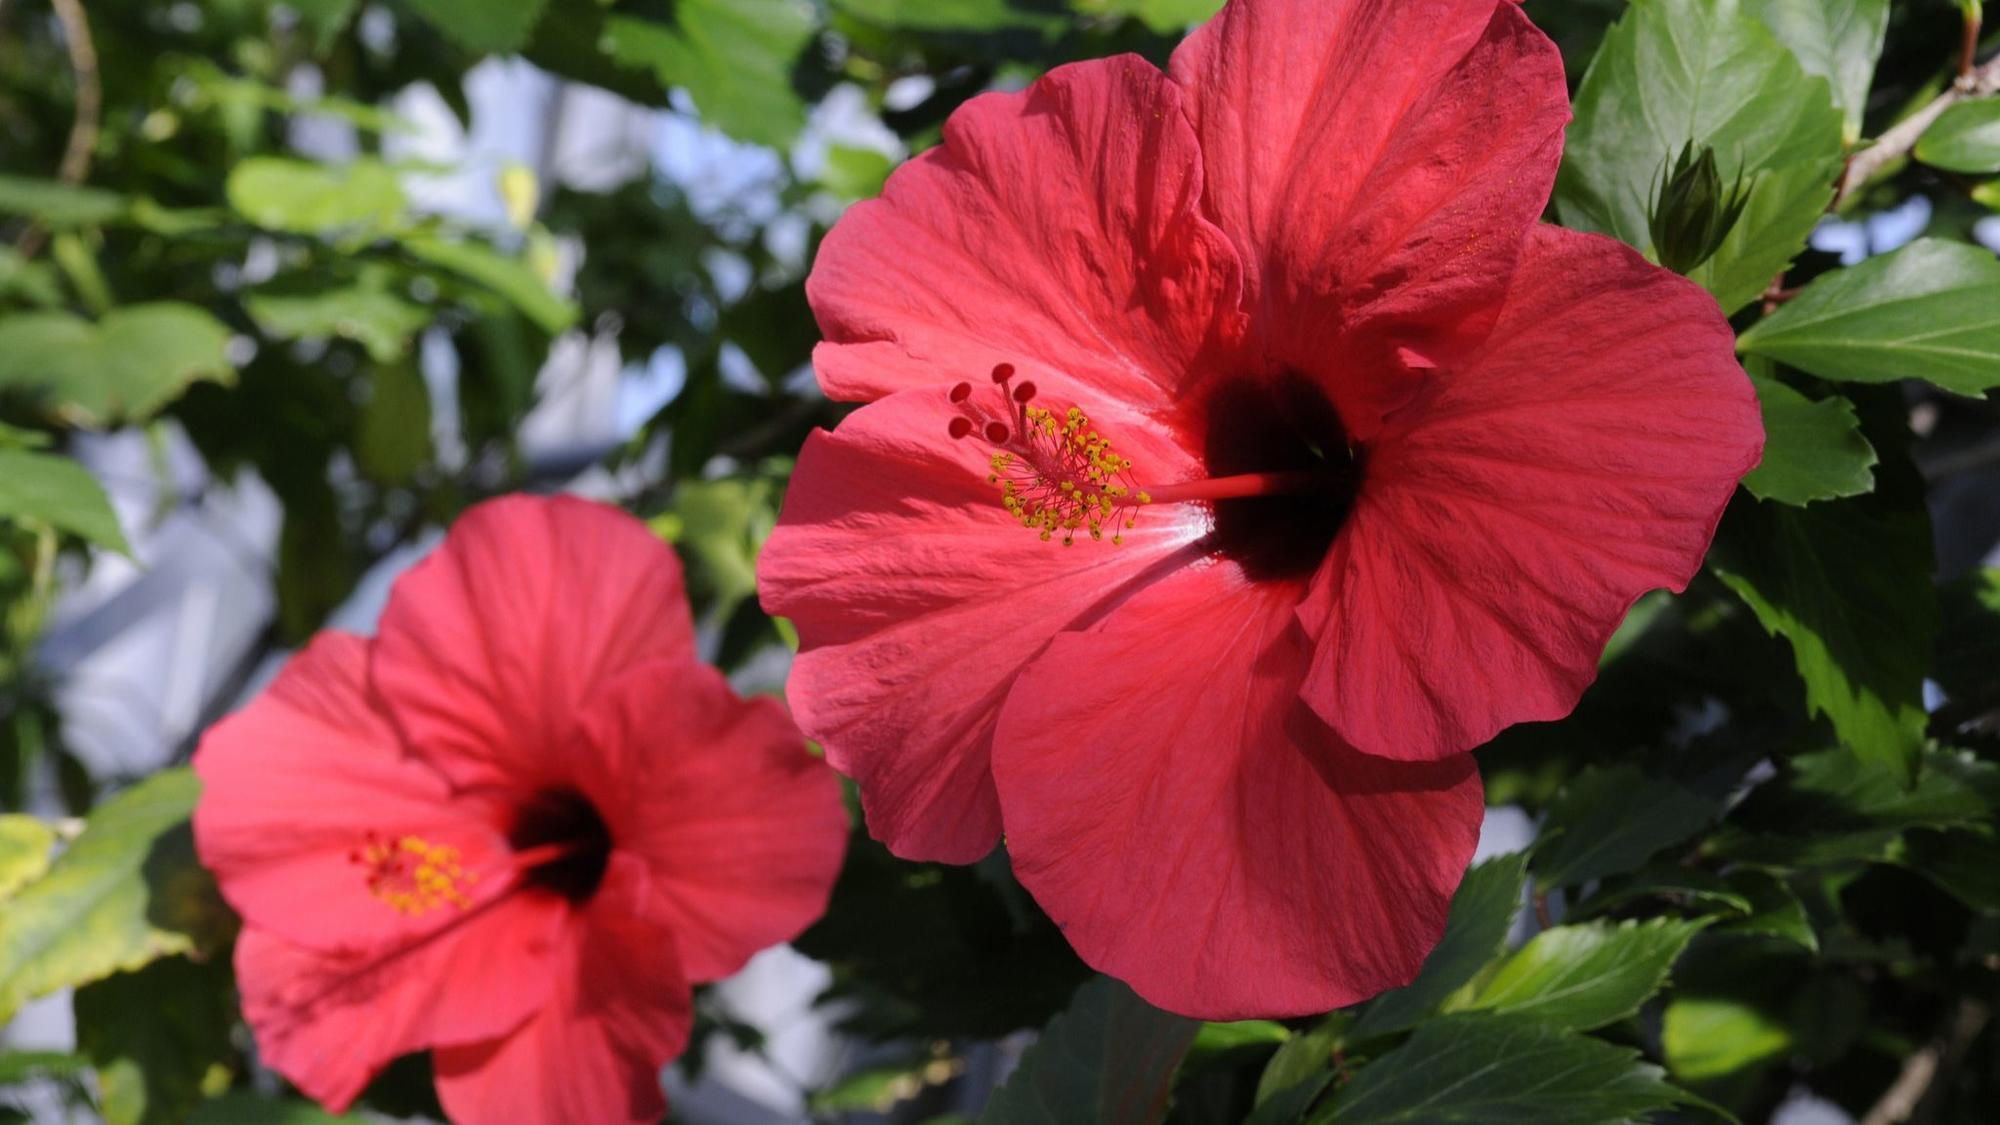 Prune fertilize provide enough sun care strategies for tropical prune fertilize provide enough sun care strategies for tropical hibiscus chicago tribune izmirmasajfo